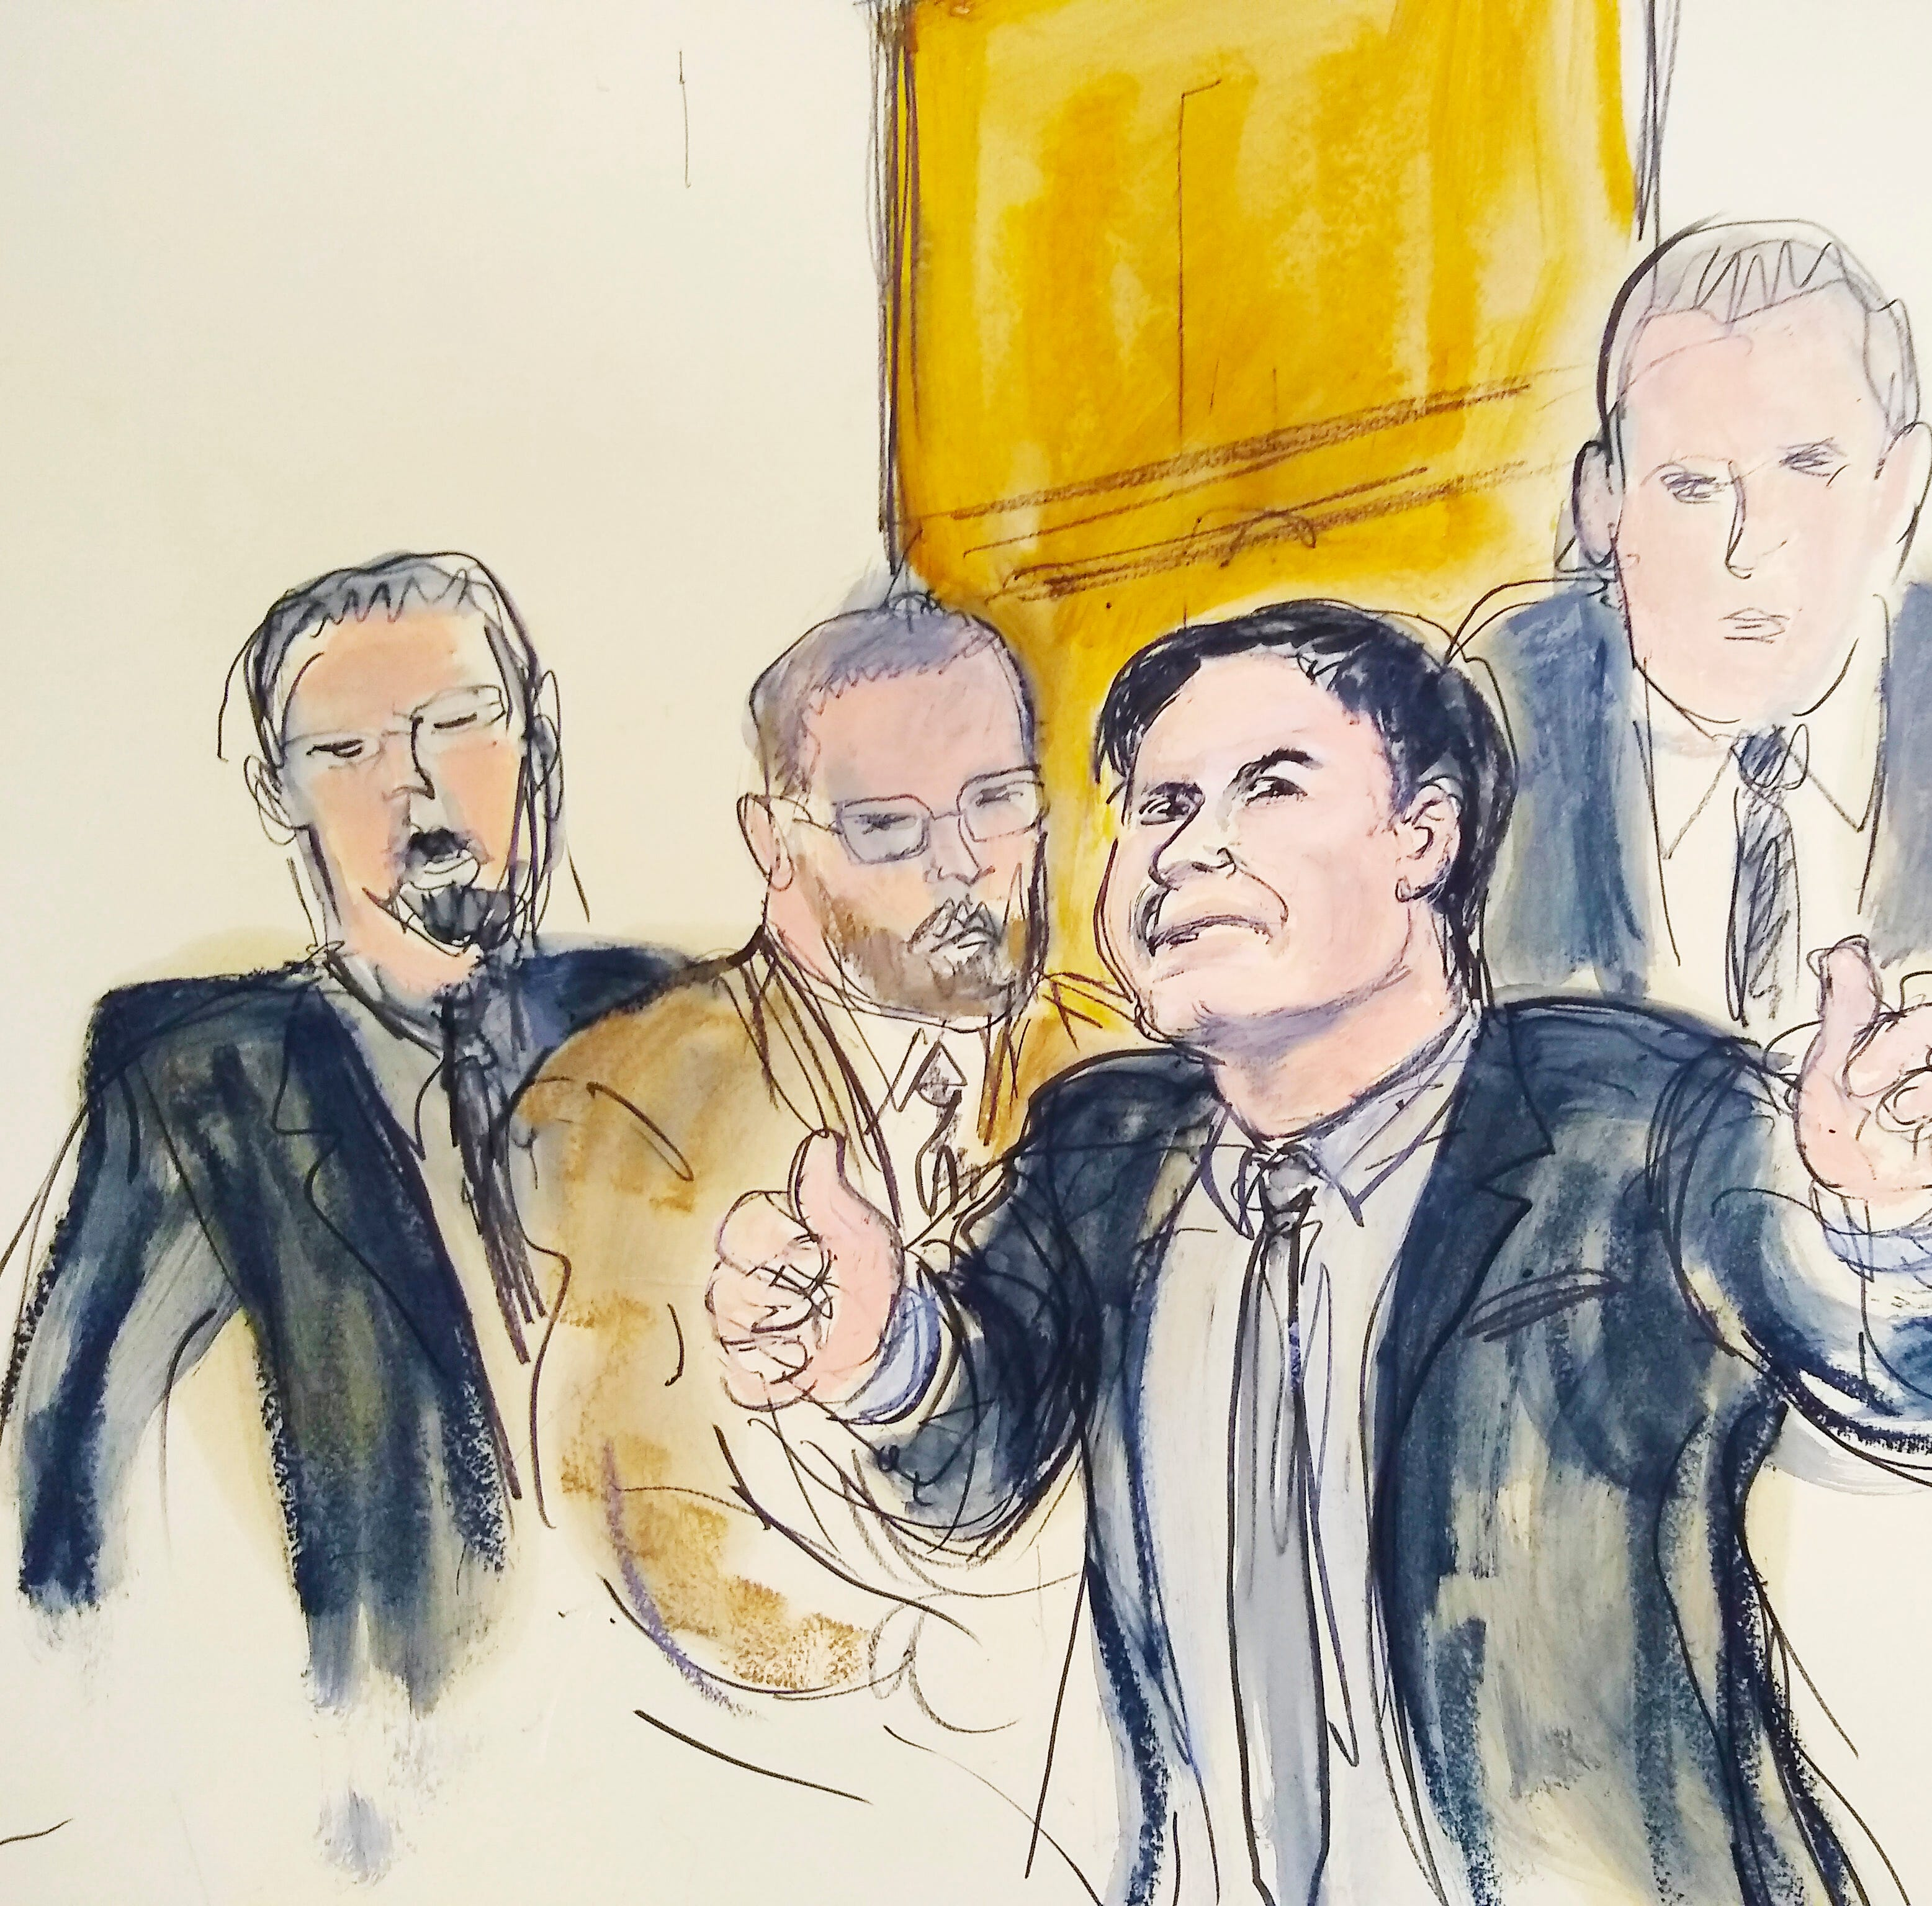 El Chapo trial filings show witness admitted sex with underage girls, occult beliefs